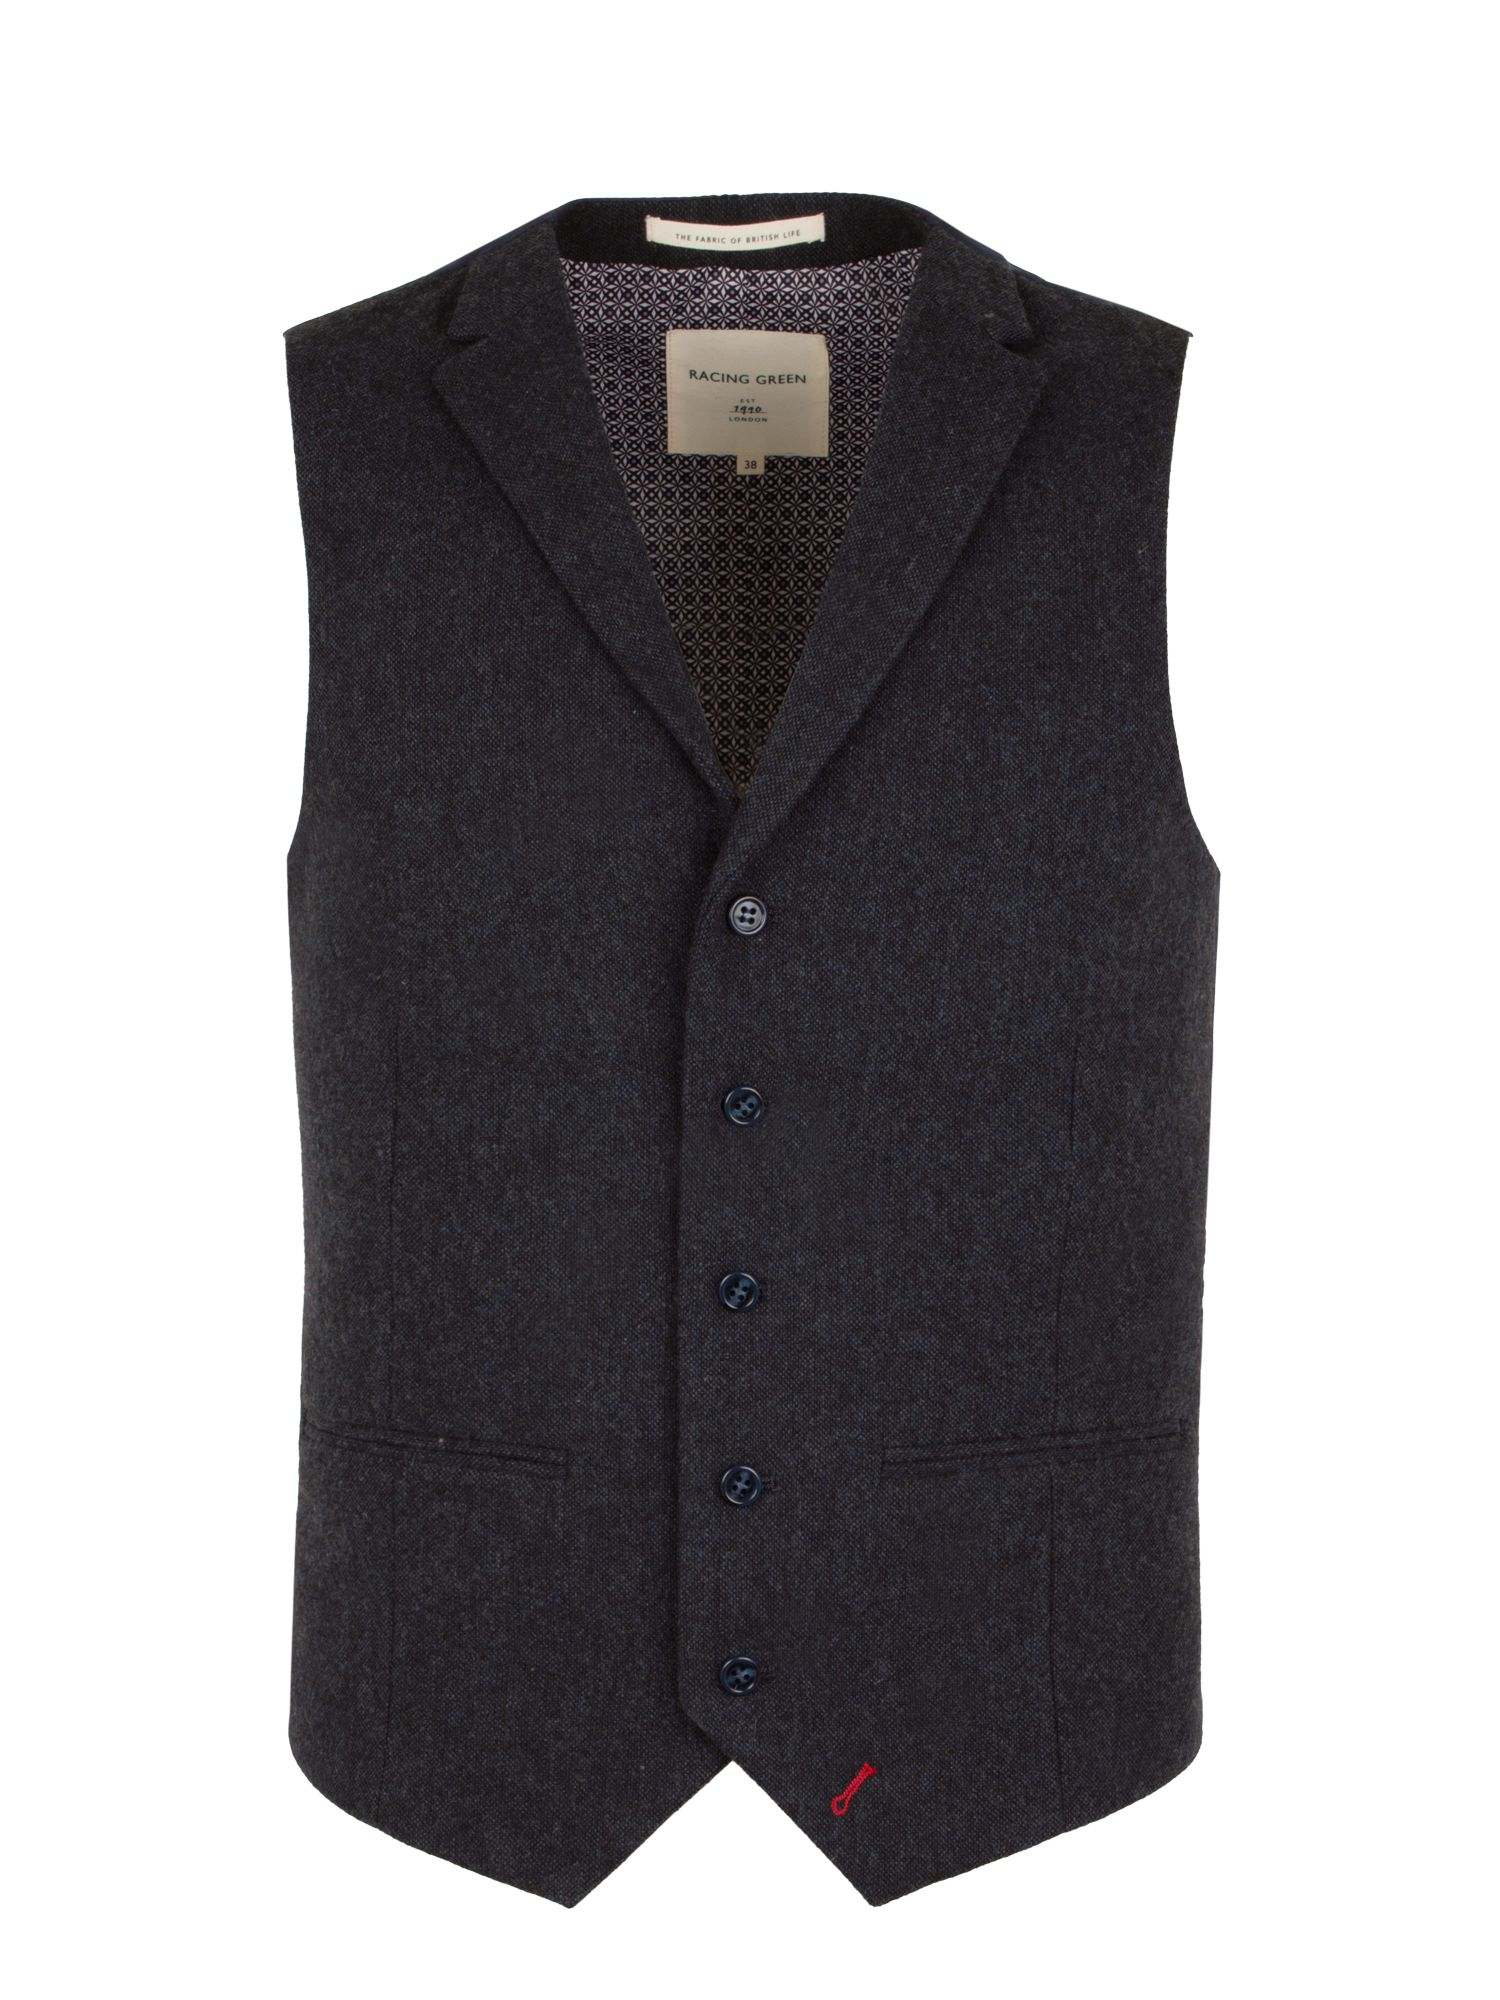 ditilink.gq offers the latest double breasted waistcoats and vests at cheap prices. Free shipping worldwide. Vests & Waistcoats Suits & Blazers Activewear; Hot Pocket Vest Men's Waistcoat Red Vest White Waistcoat Black Hooded Vest Black Button Vest Slimming Waistcoat Double Breasted Waistcoat Waistcoat Design Green Army Vest Fashion.